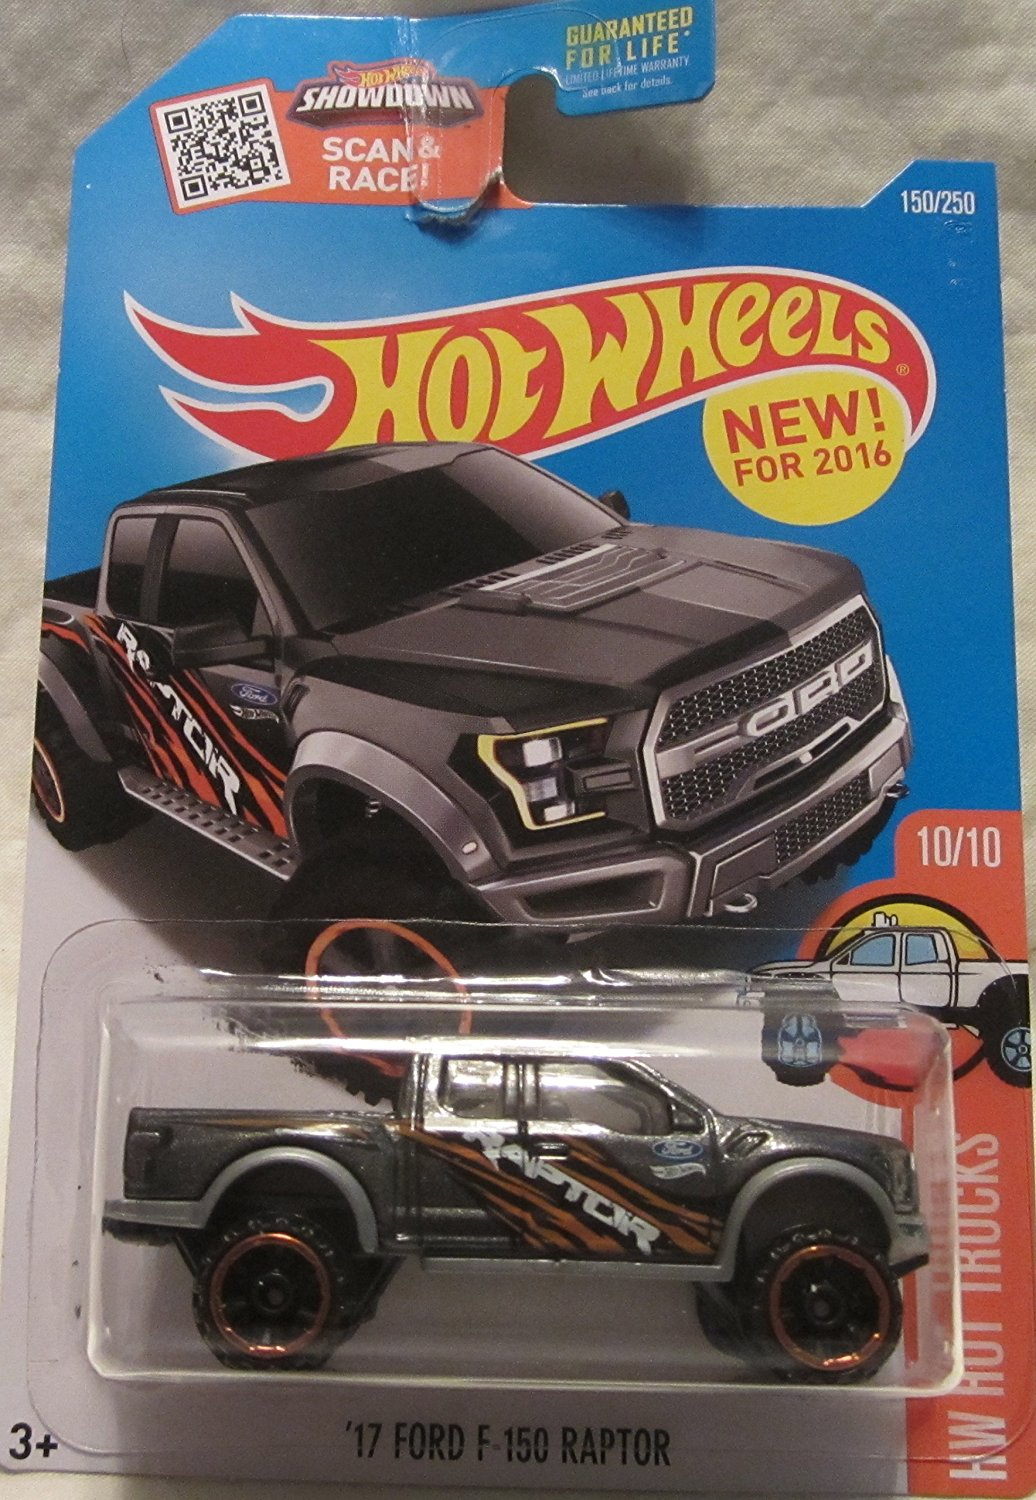 '17 Ford F-150 Raptor Hot Wheels 2016 HW Hot Trucks 1:64 Scale Collectible Die Cast Metal Toy Car Model #10/10